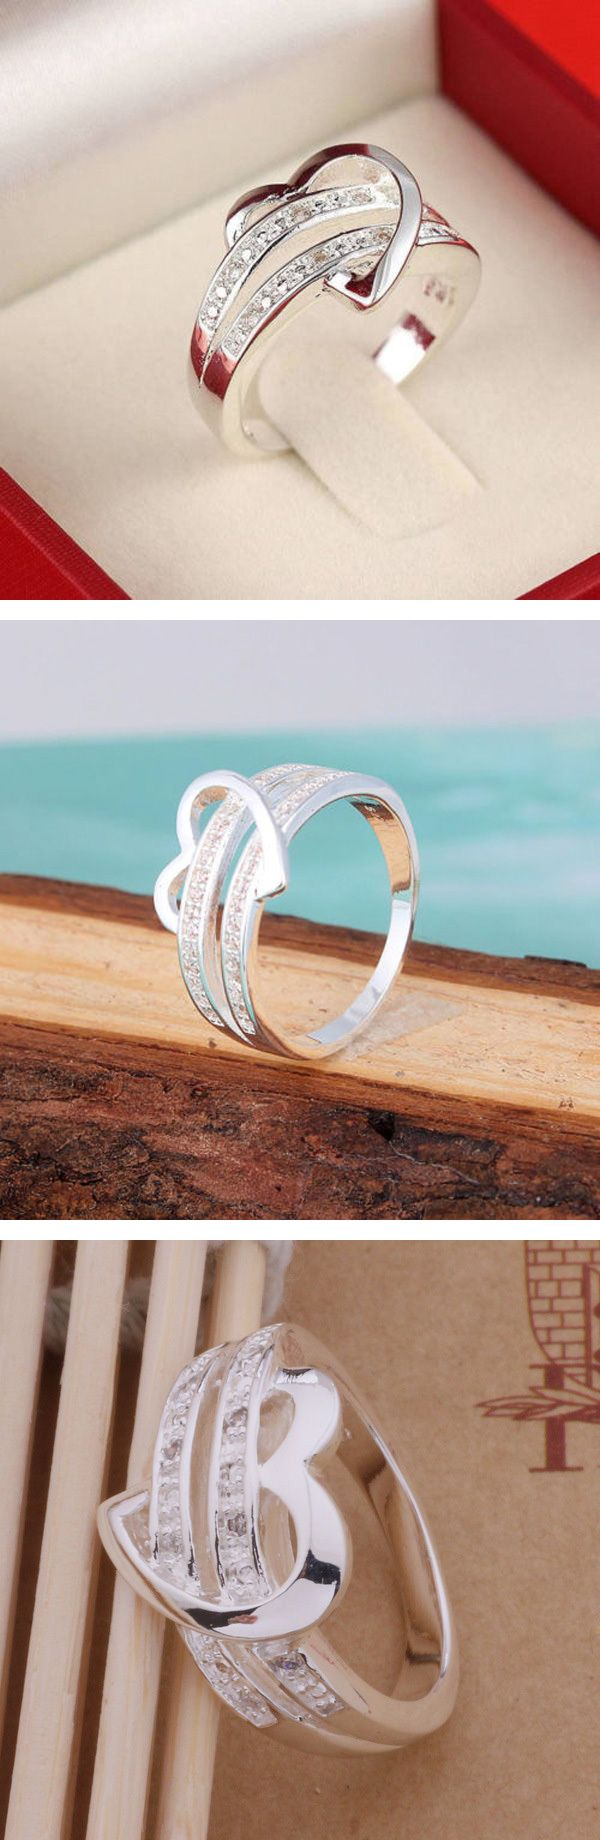 Get this hot heart ring made with 925 sterling silver. Great for your girlfriend, engagement, wedding, or just to show that special someone how much you love them. #heart